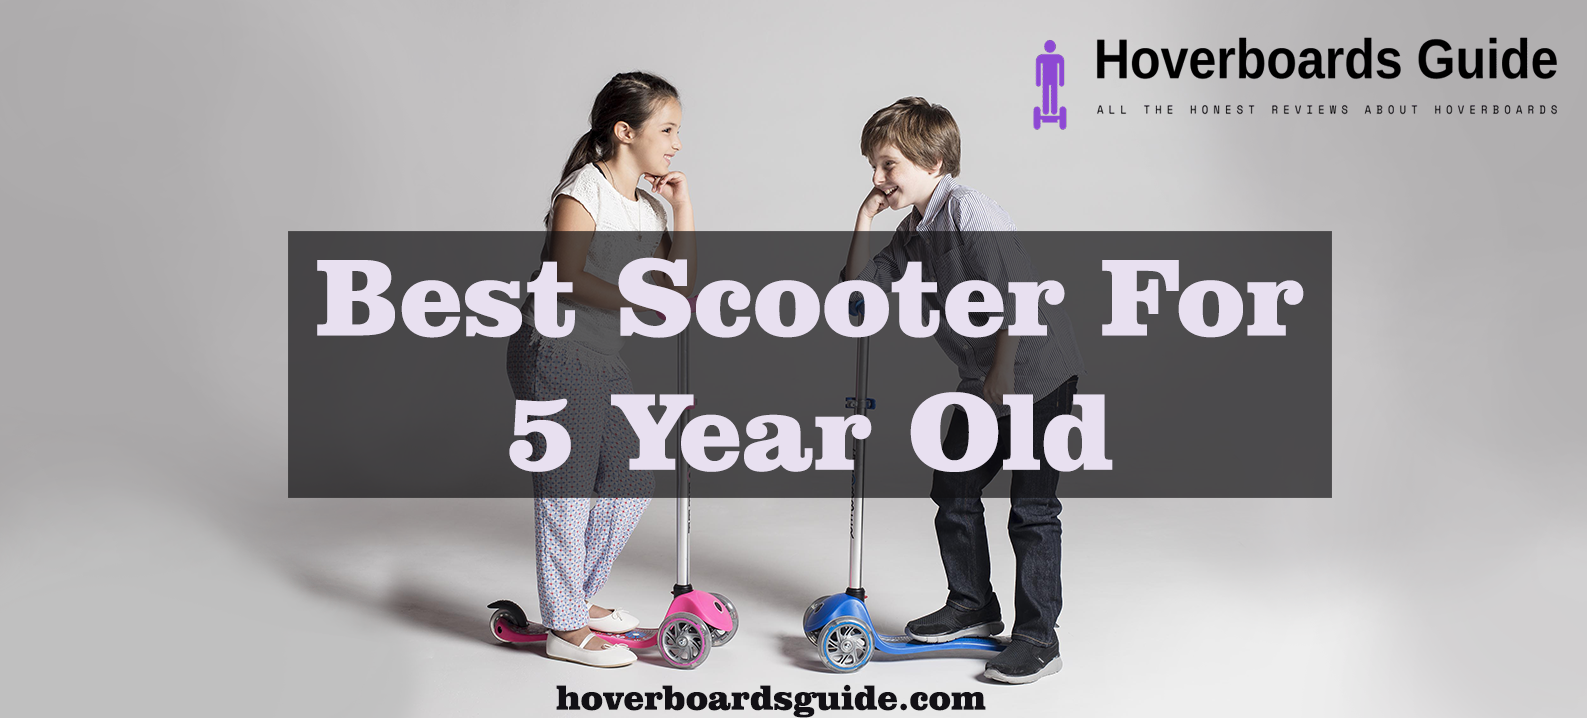 Best Scooter For 5 Year Old